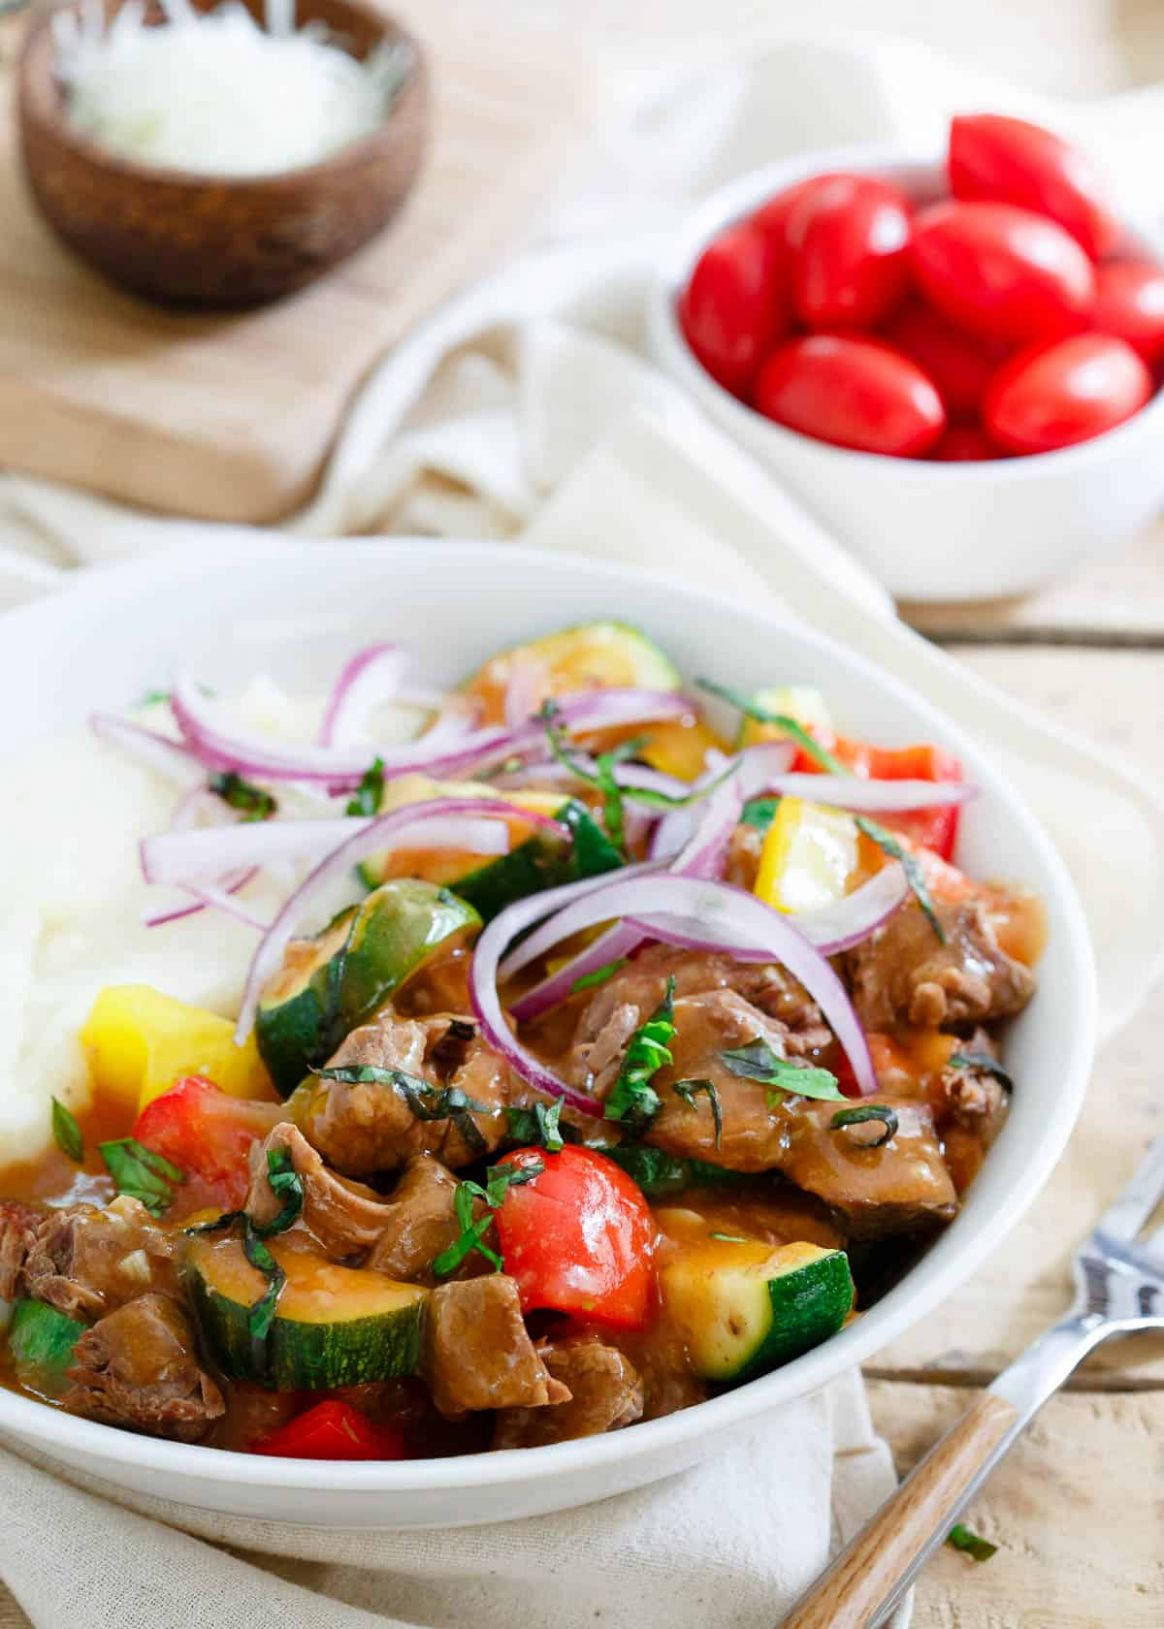 Summer Beef Stew - Slow Cooker Summer Beef Stew - Summer Recipes With Stew Meat